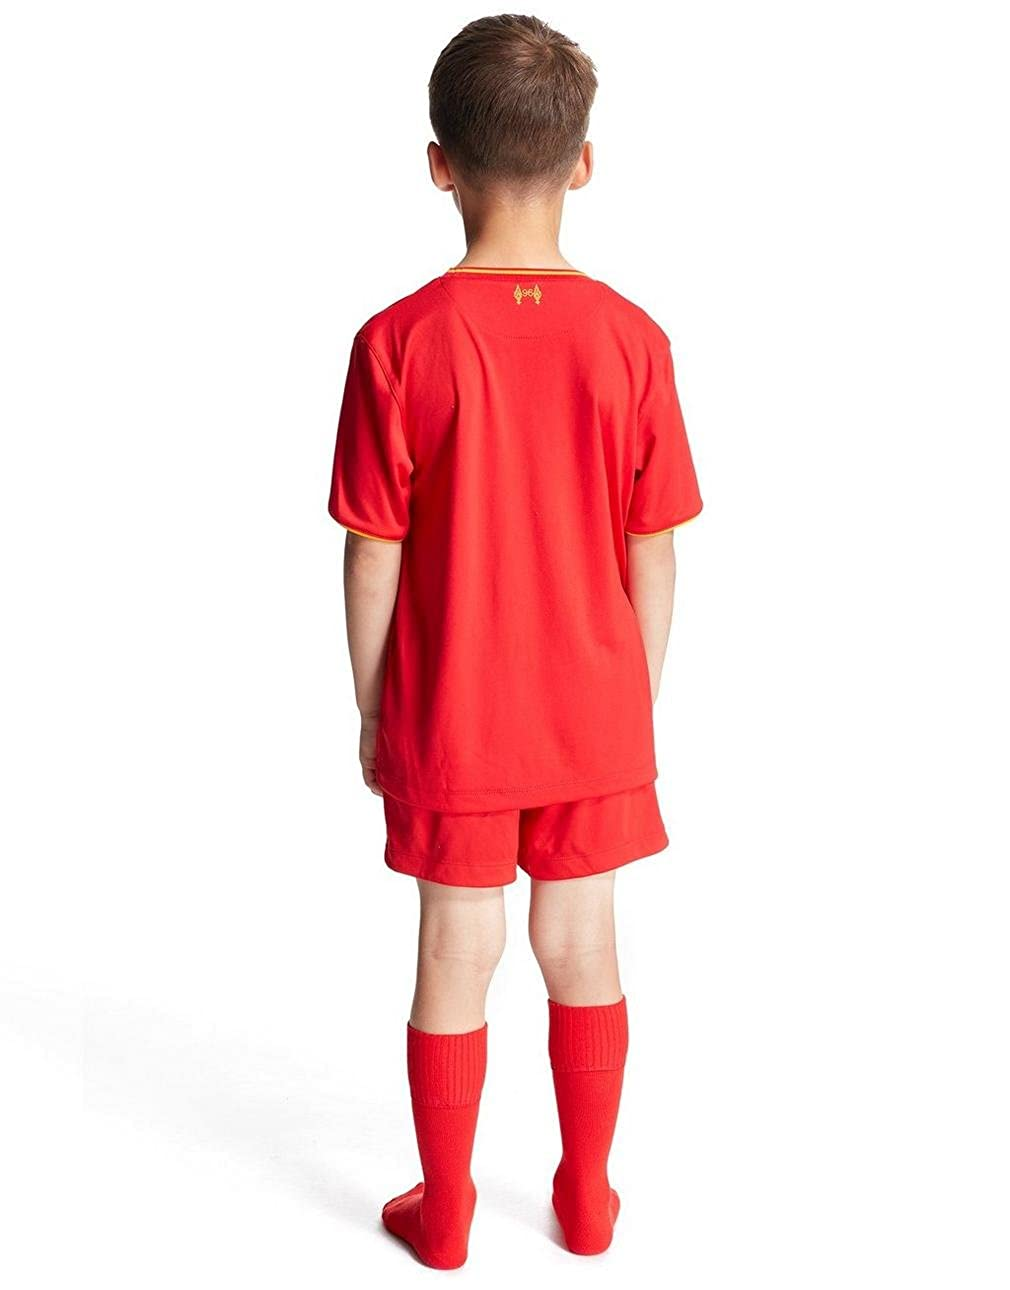 020d84653 New Balance Liverpool FC 2016 17 Home Kit Children  Amazon.co.uk  Clothing